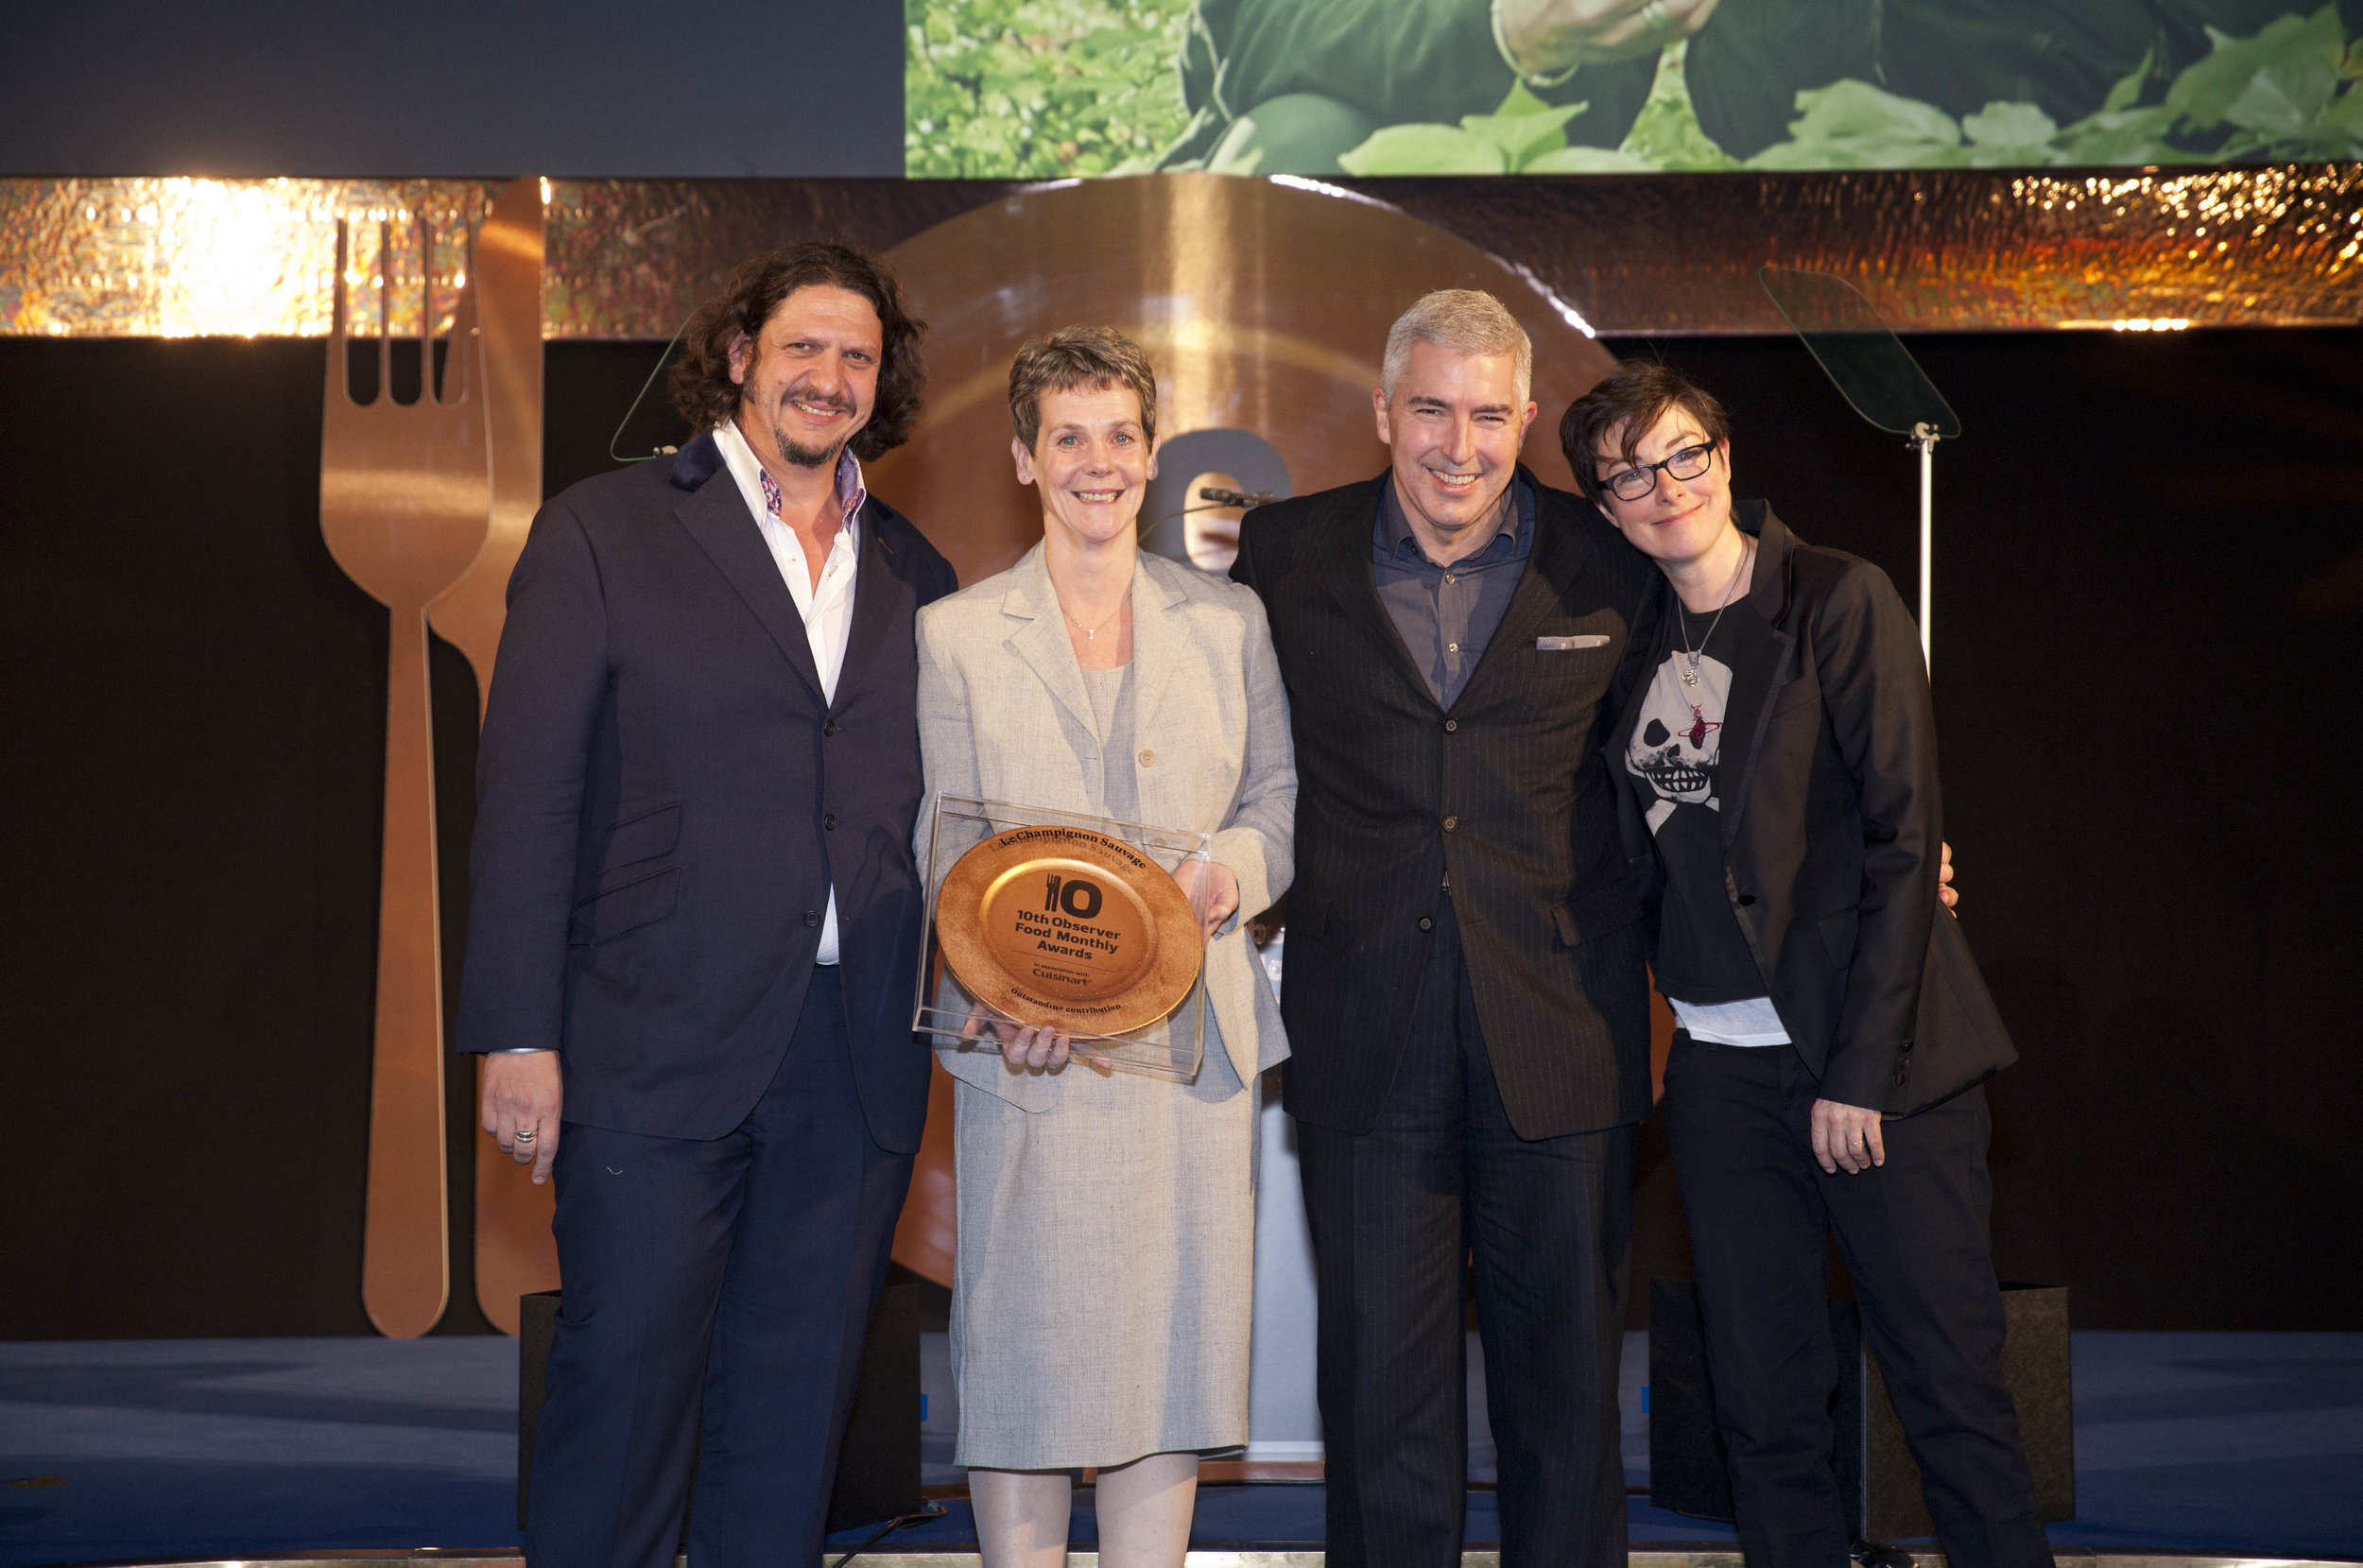 2013 OFM Award - Outstanding Contribution